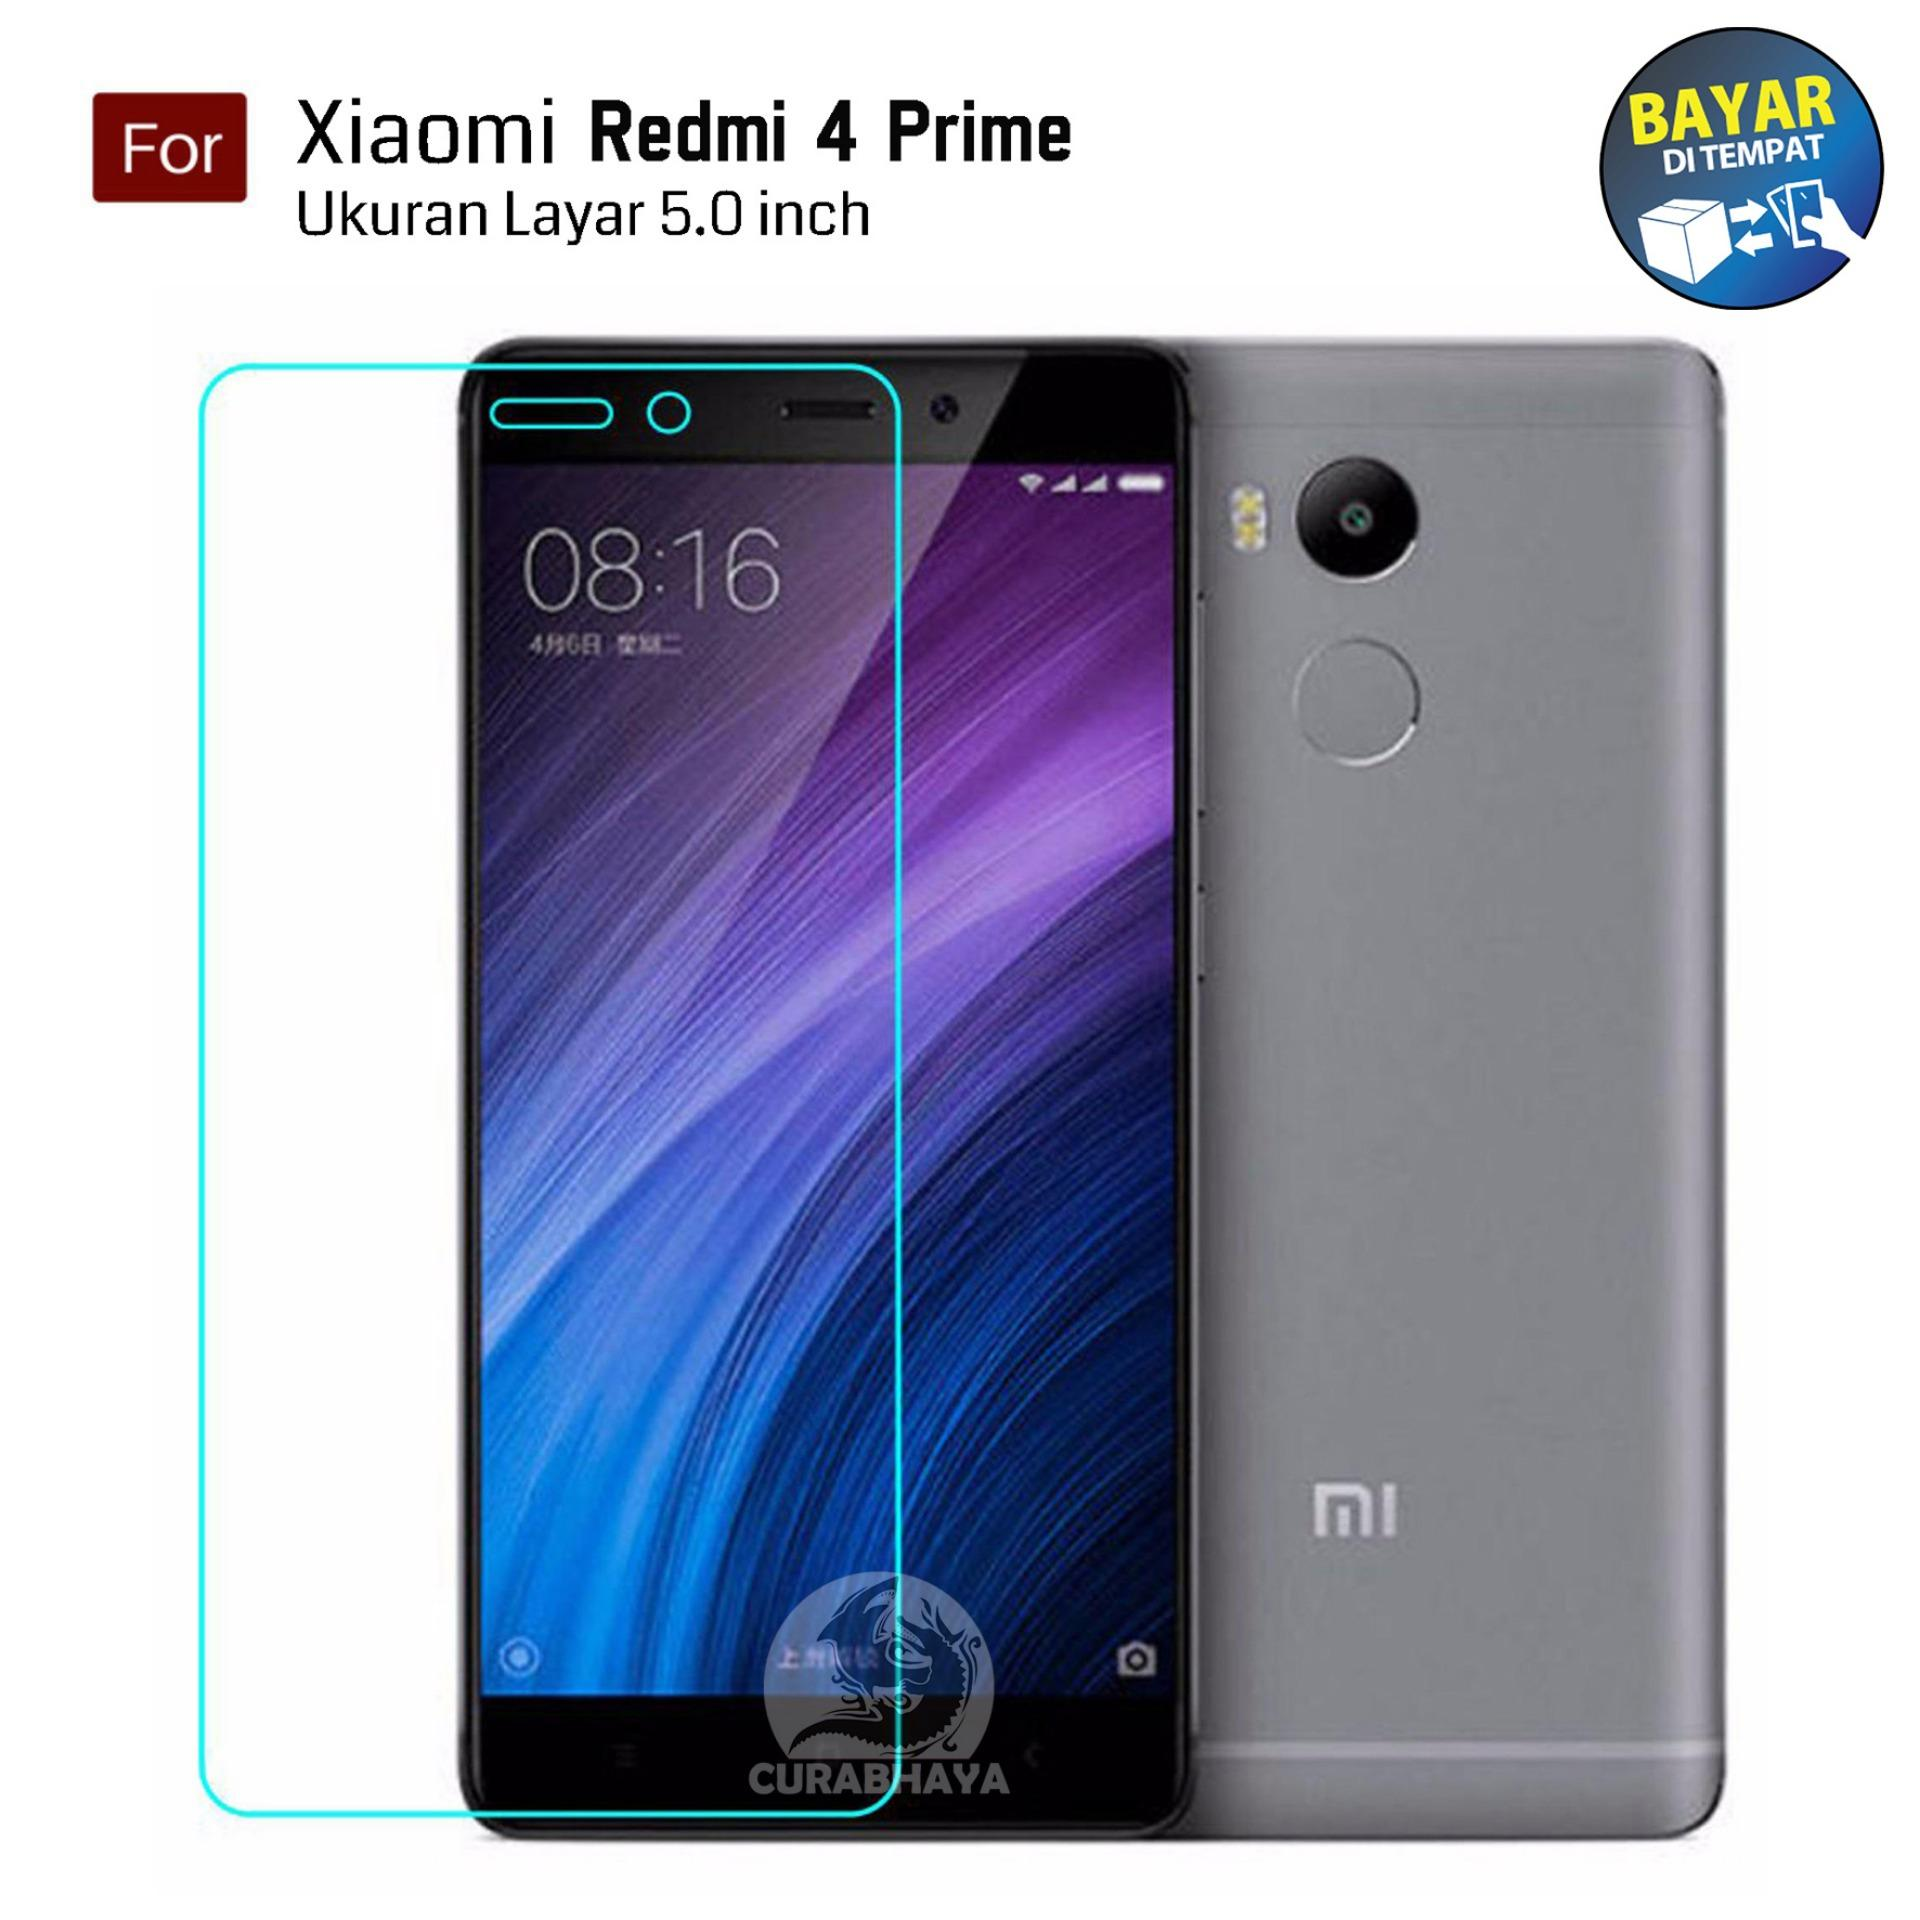 Kong Tempered Glass Xiaomi Redmi 4 Prime | 9H Screen Protector 0.32mm - Bening